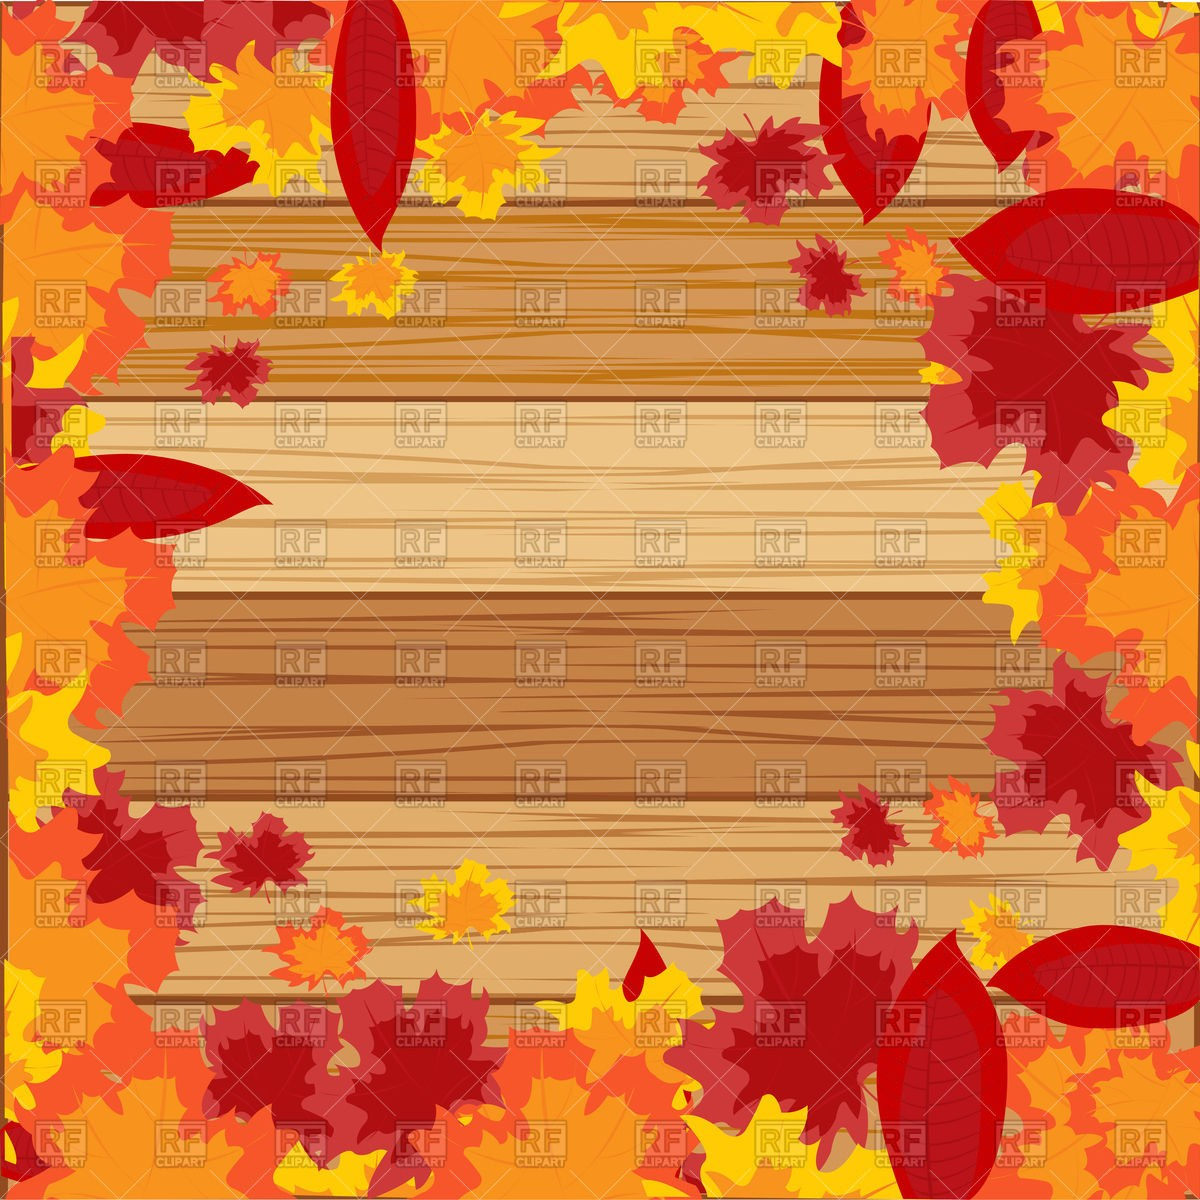 Free fall clipart backgrounds 6 » Clipart Portal.